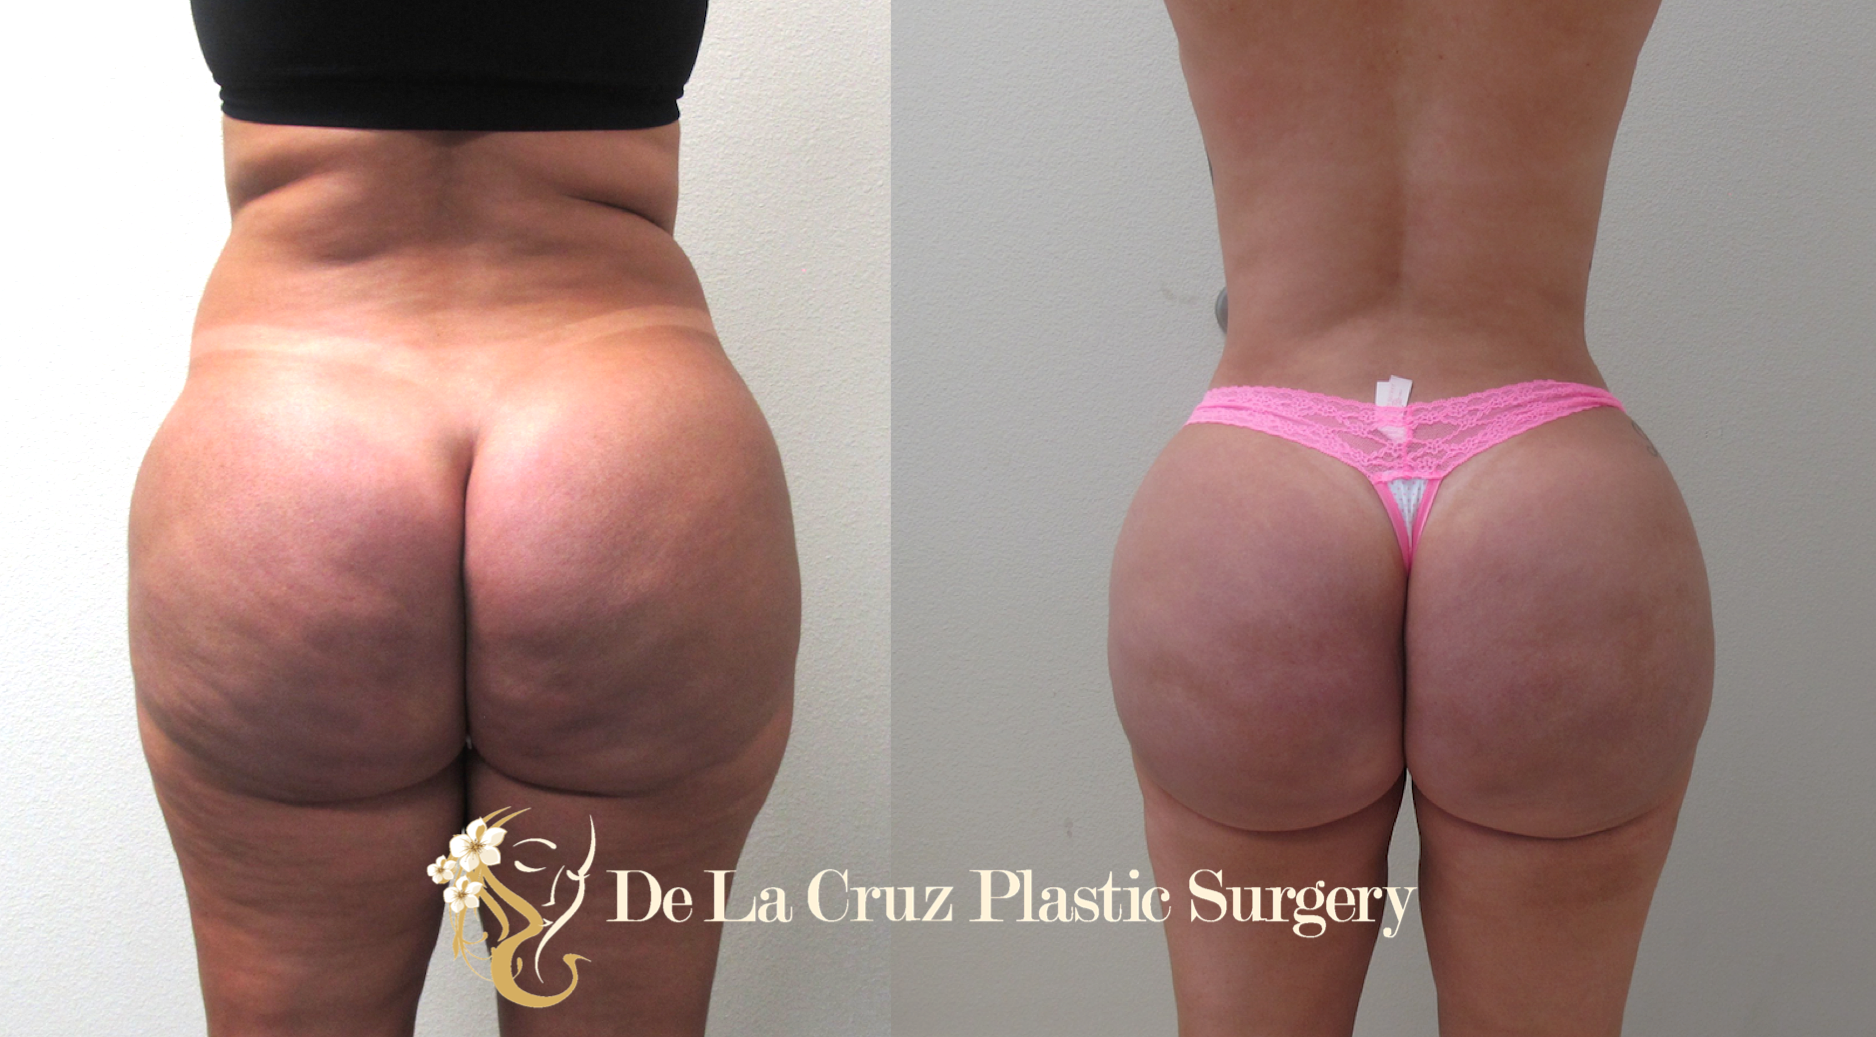 Before & After Photos of Hydrogel Removal using the VASER Liposuction with Fat transfer.  Procedure was performed by Dr. Emmanuel De La Cruz, a Houston Plastic Surgeon.